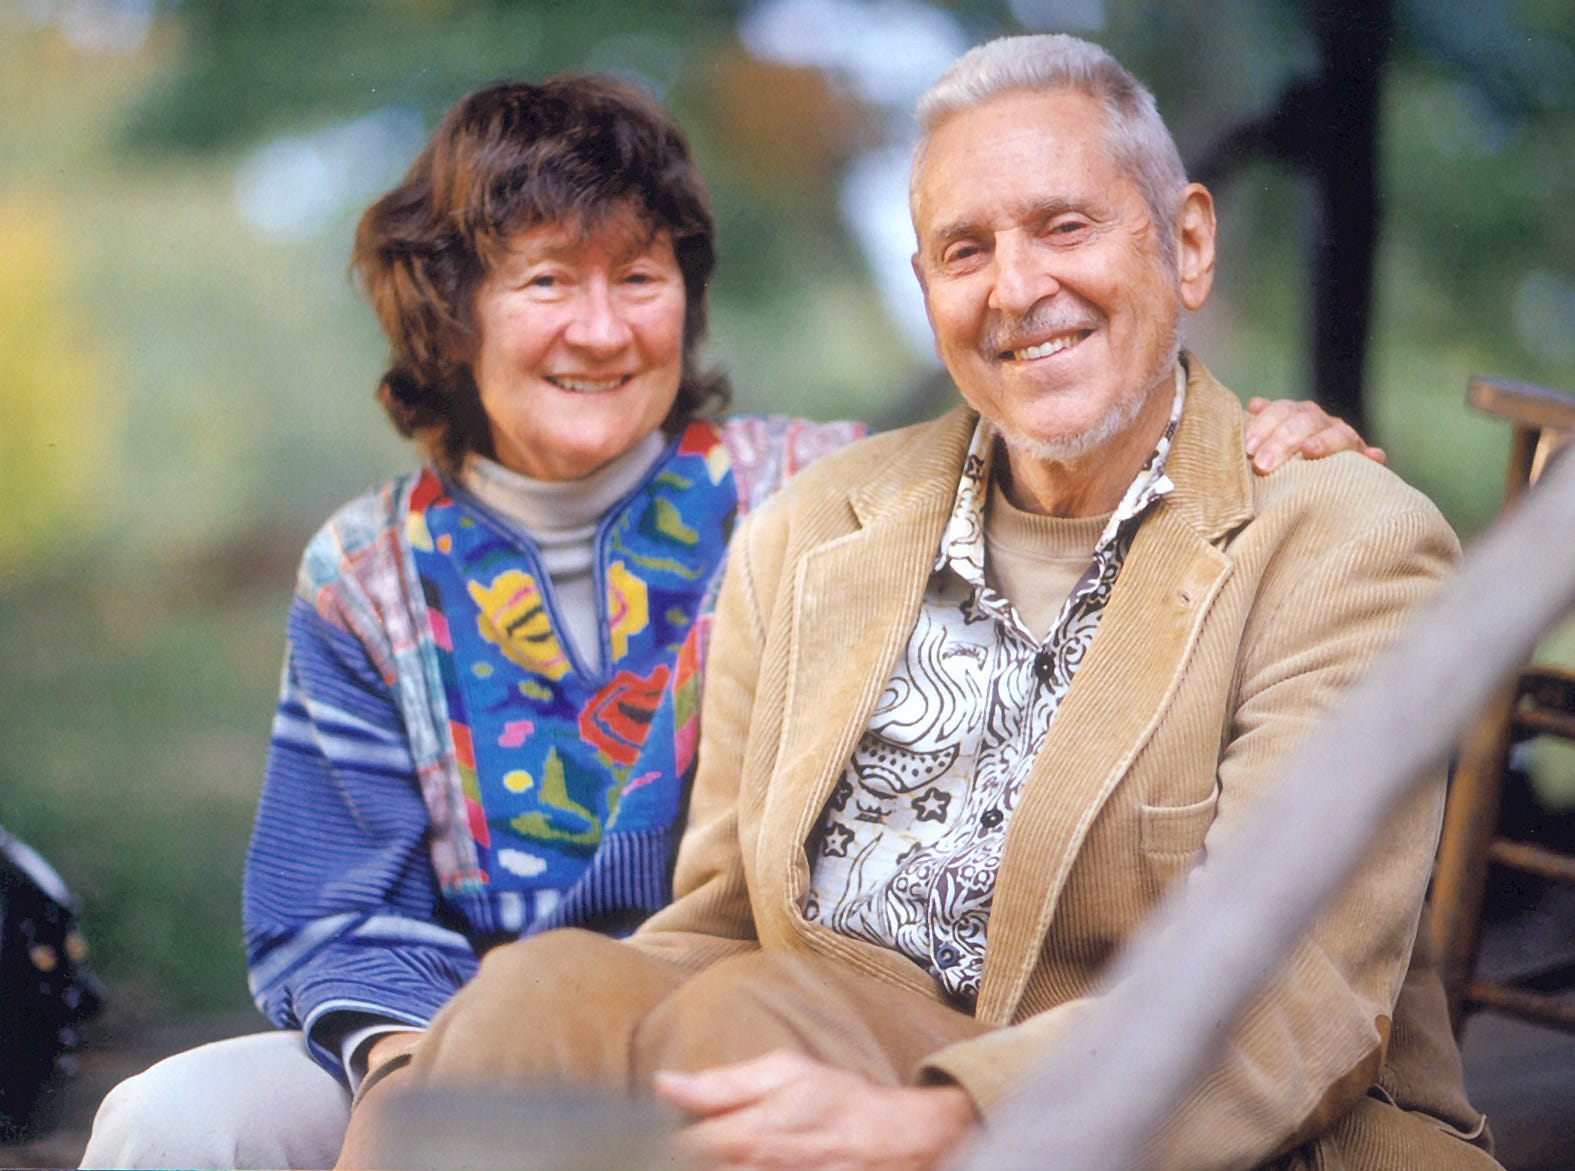 Guy and Candie Carawan, from the Highlander Research and Education Center in New Market, are social activists and folk musicians who were instrumental in turning ìWe Shall Overcomeî into the fight song of the civil-rights movement